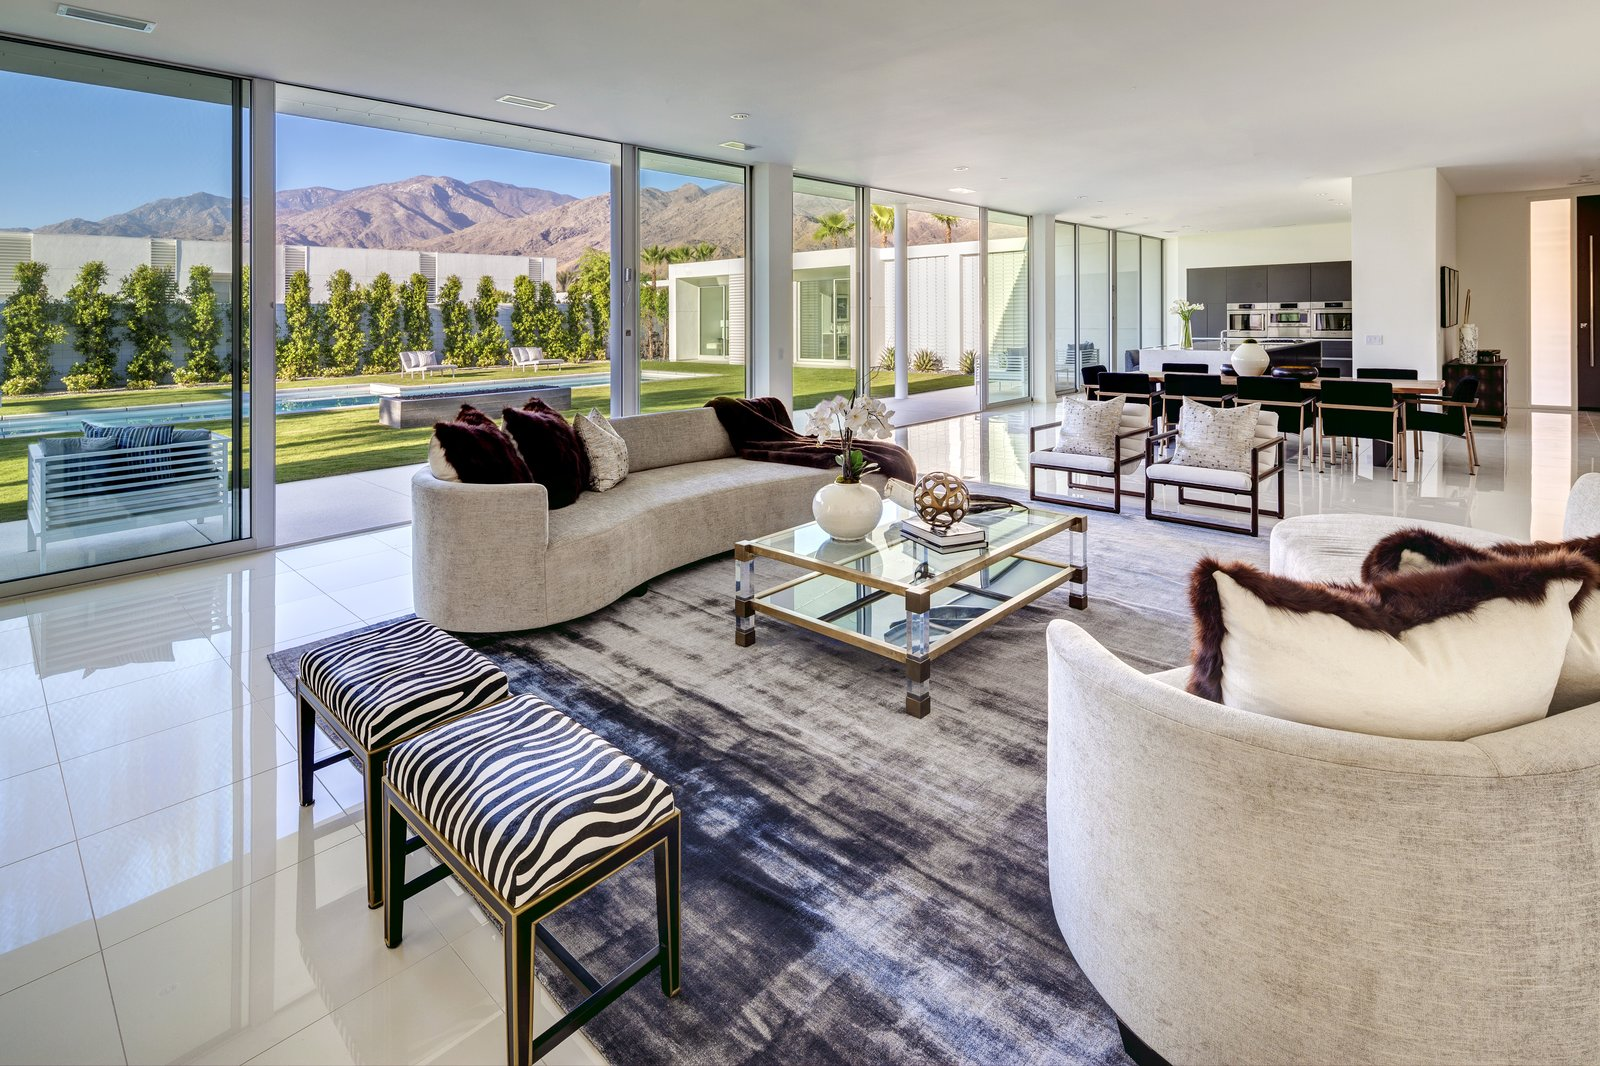 Tagged: Living Room, Sofa, Coffee Tables, Chair, and Rug Floor. Linea Residence by Zillow